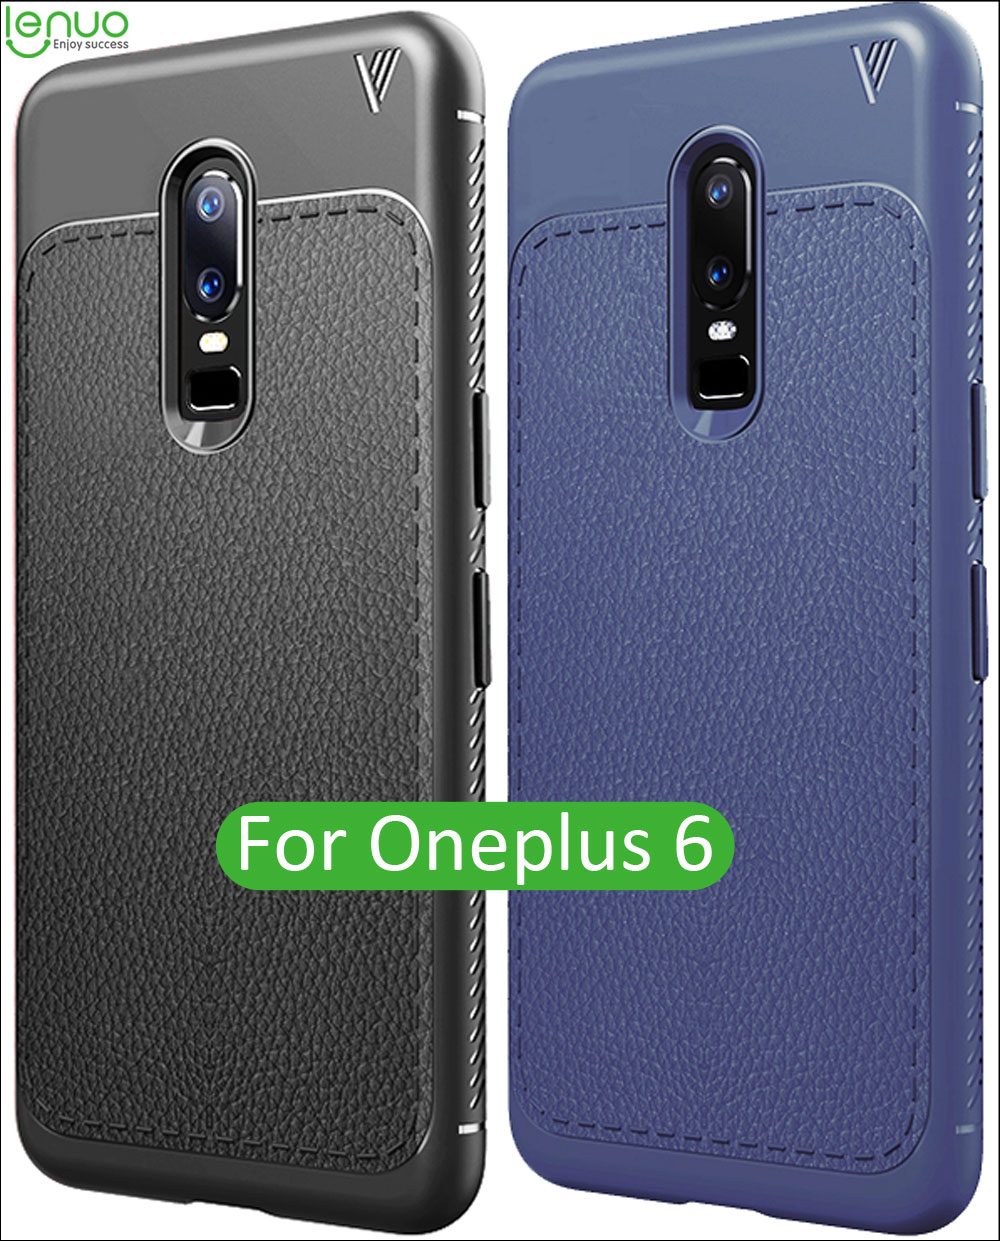 Lenuo TPU Silicone Case For Oneplus 6 Leather Lichee Pattern Matte Frosted Back Cover